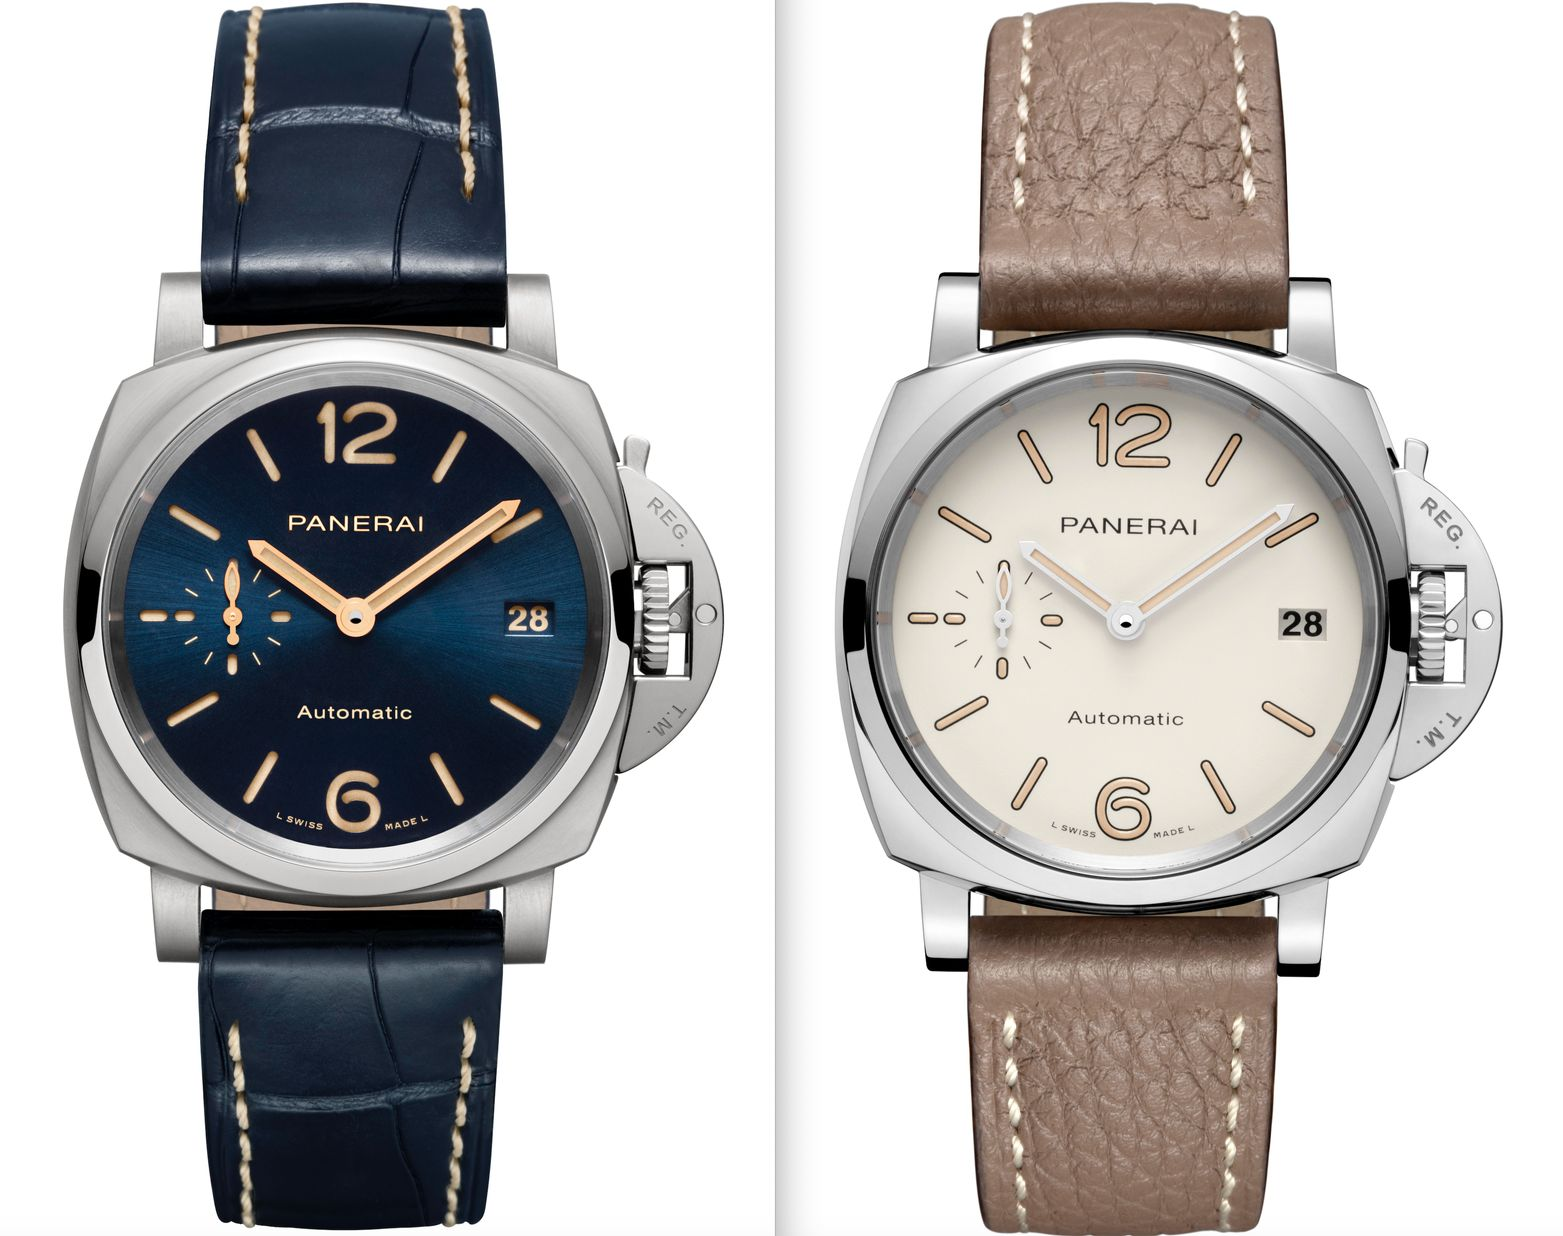 Panerai Luminor Due PAM00926 and PAM01043